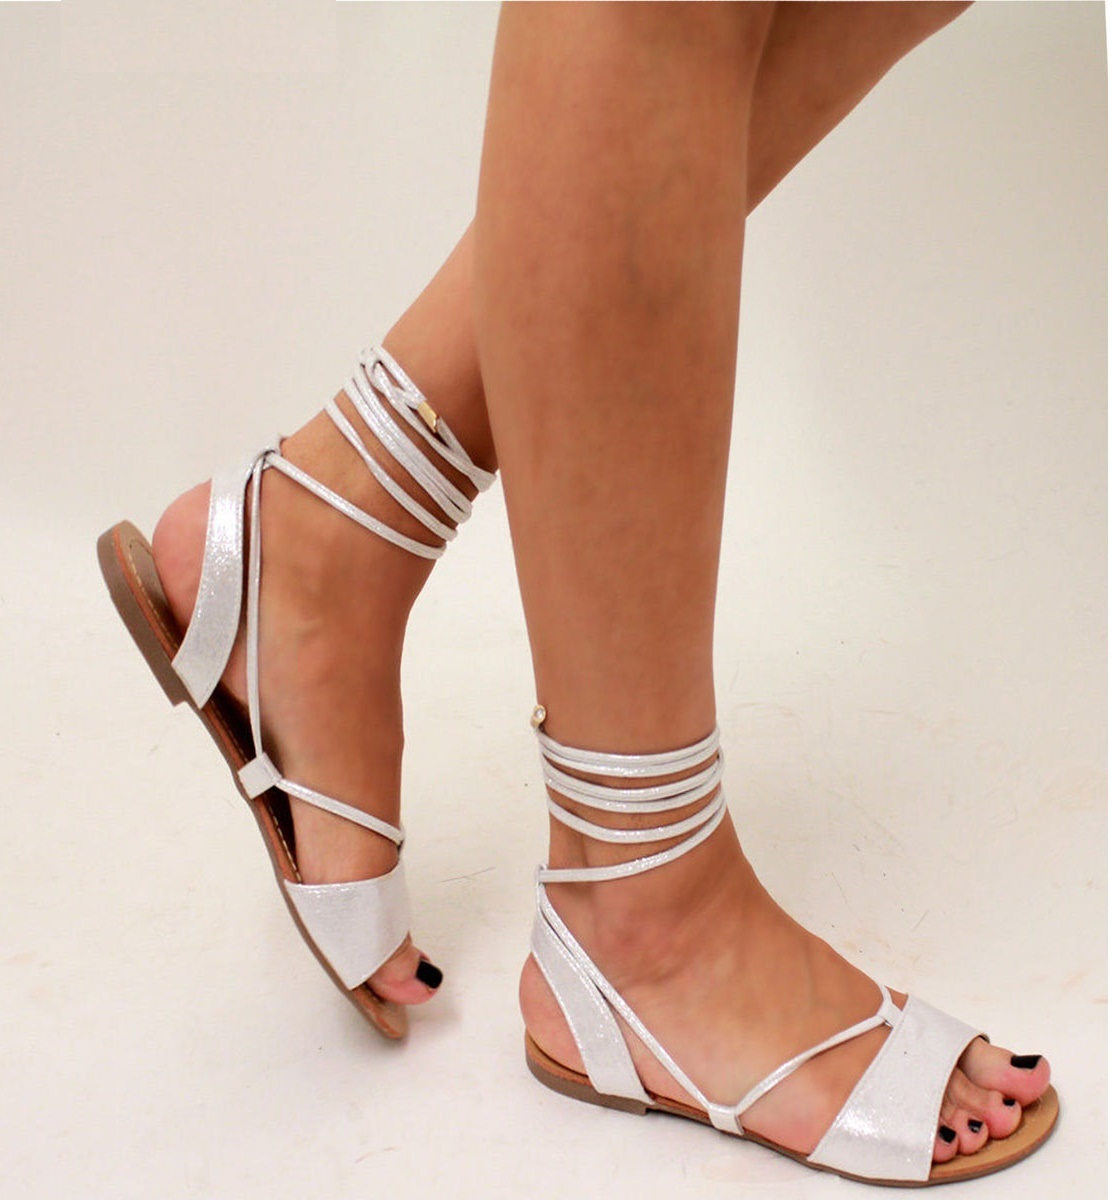 LADIES-WOMENS-FLAT-LACE-UP-LEG-STRAPPY-GLADIATOR-SUMMER-FASHION-SANDALS-SHOES-SZ